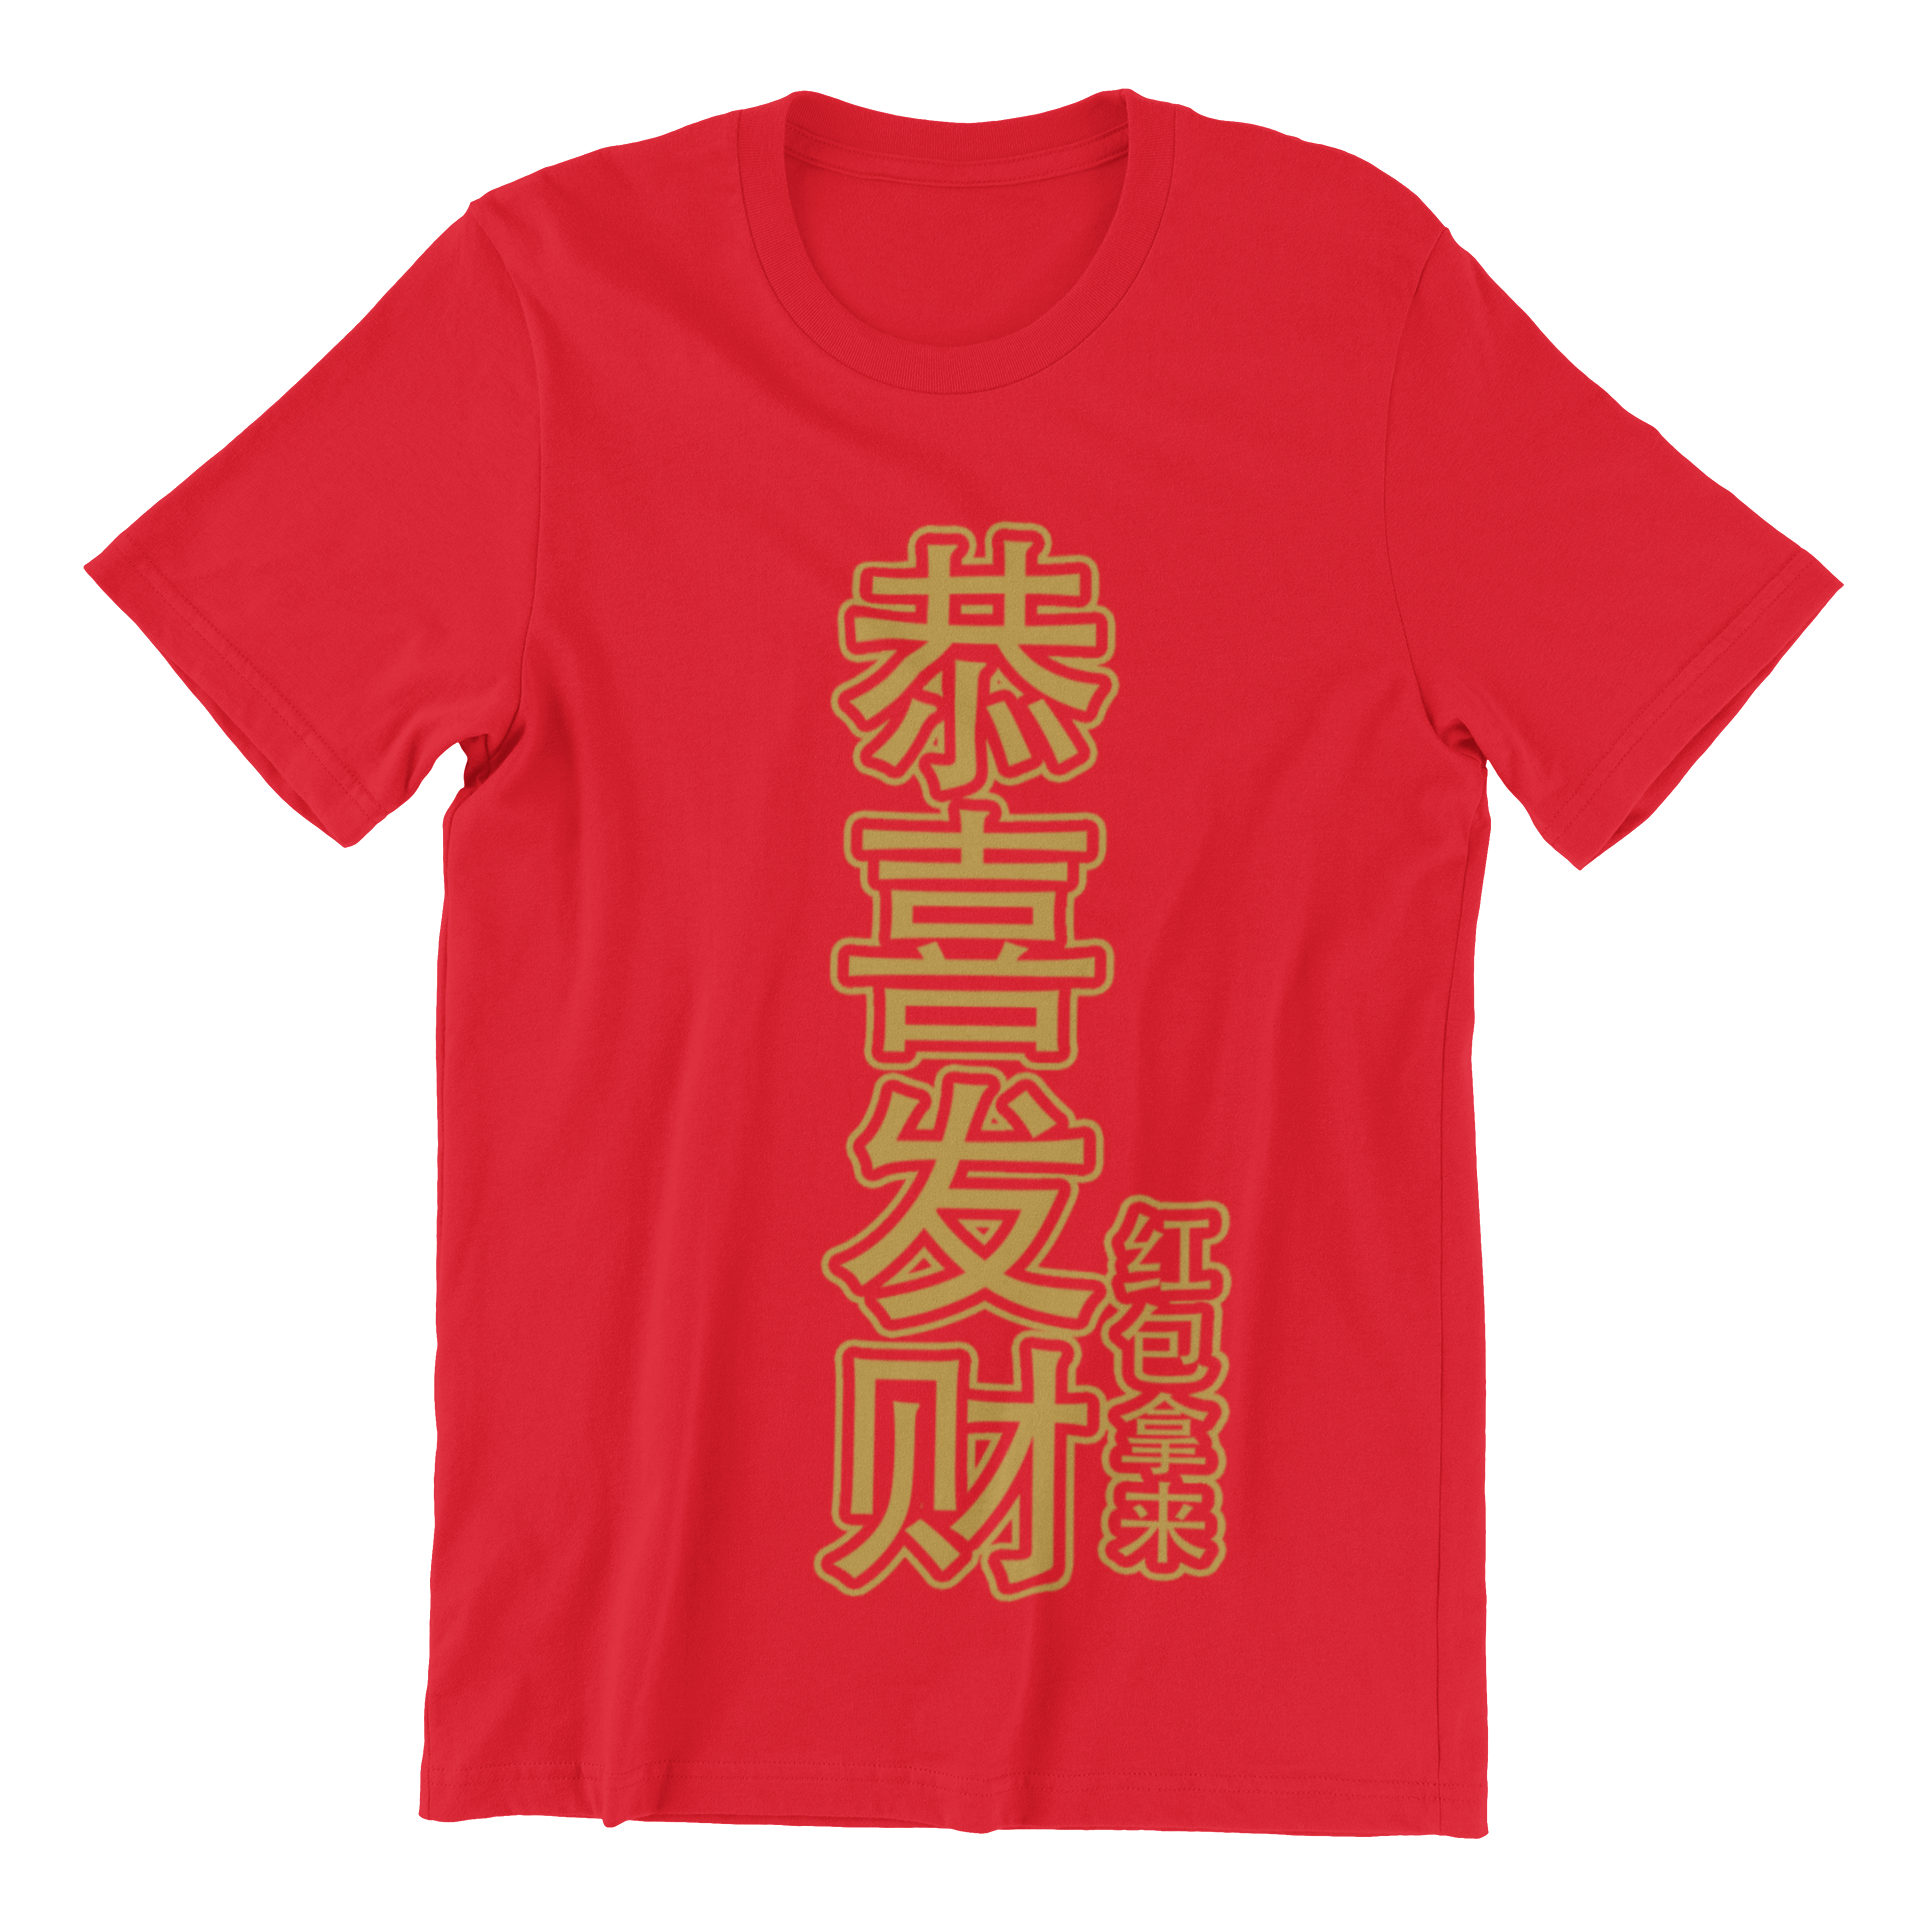 (Limited Gold Edition) 恭喜发财红包拿来 Gong Xi Fa Cai, Hong Pao Na Lai Crew Neck S-Sleeve T-shirt